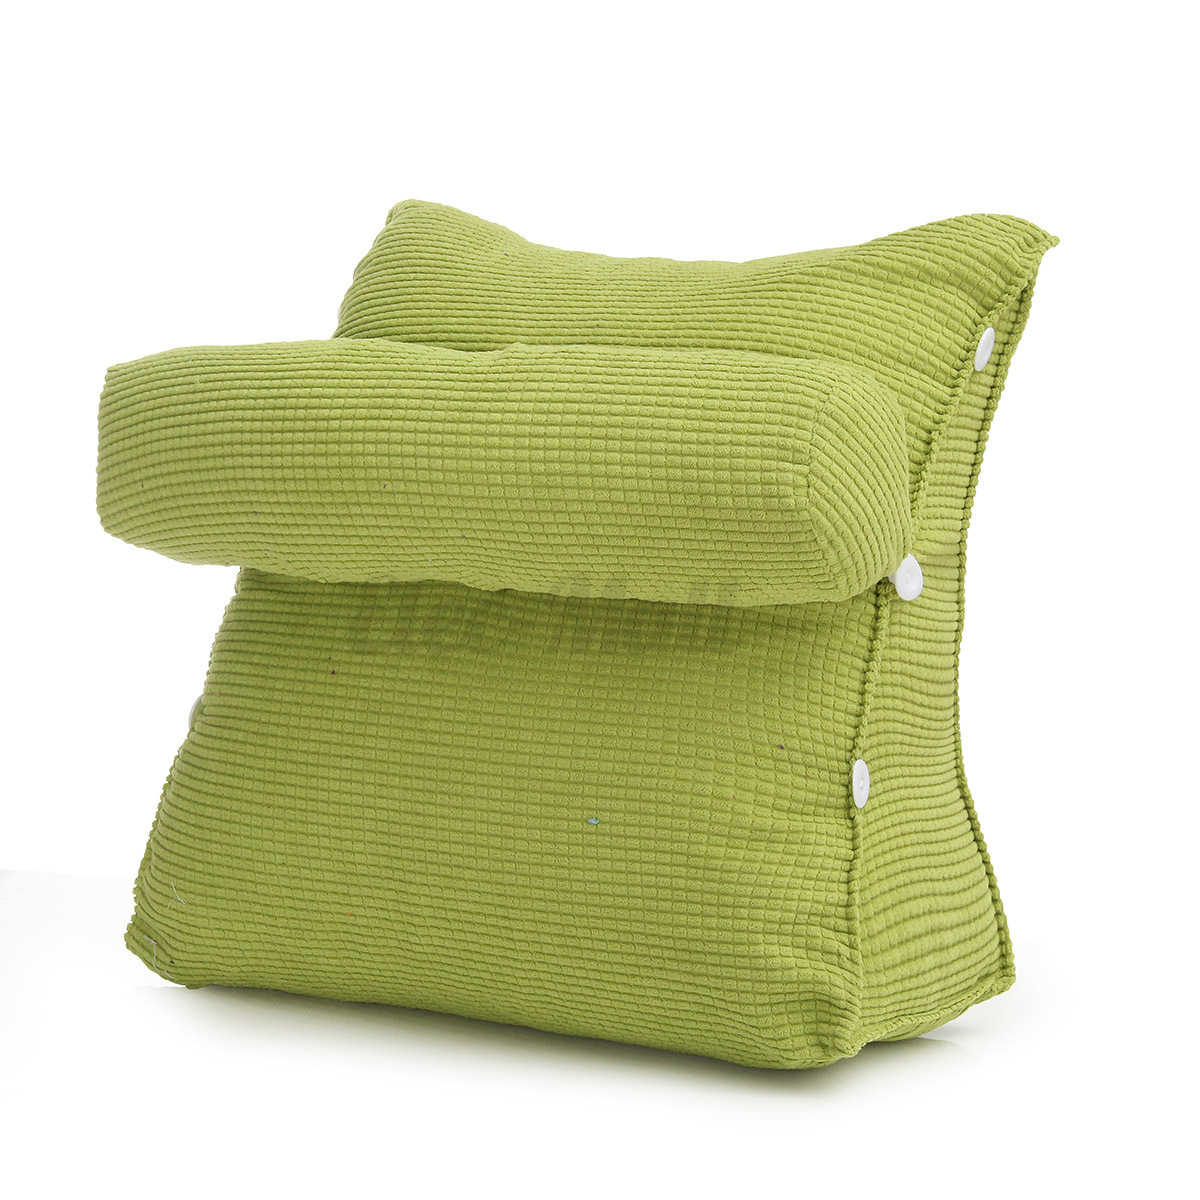 Back Pillow For Chair Sofa Bed Office Chair Cushion Adjustable Neck Support Back